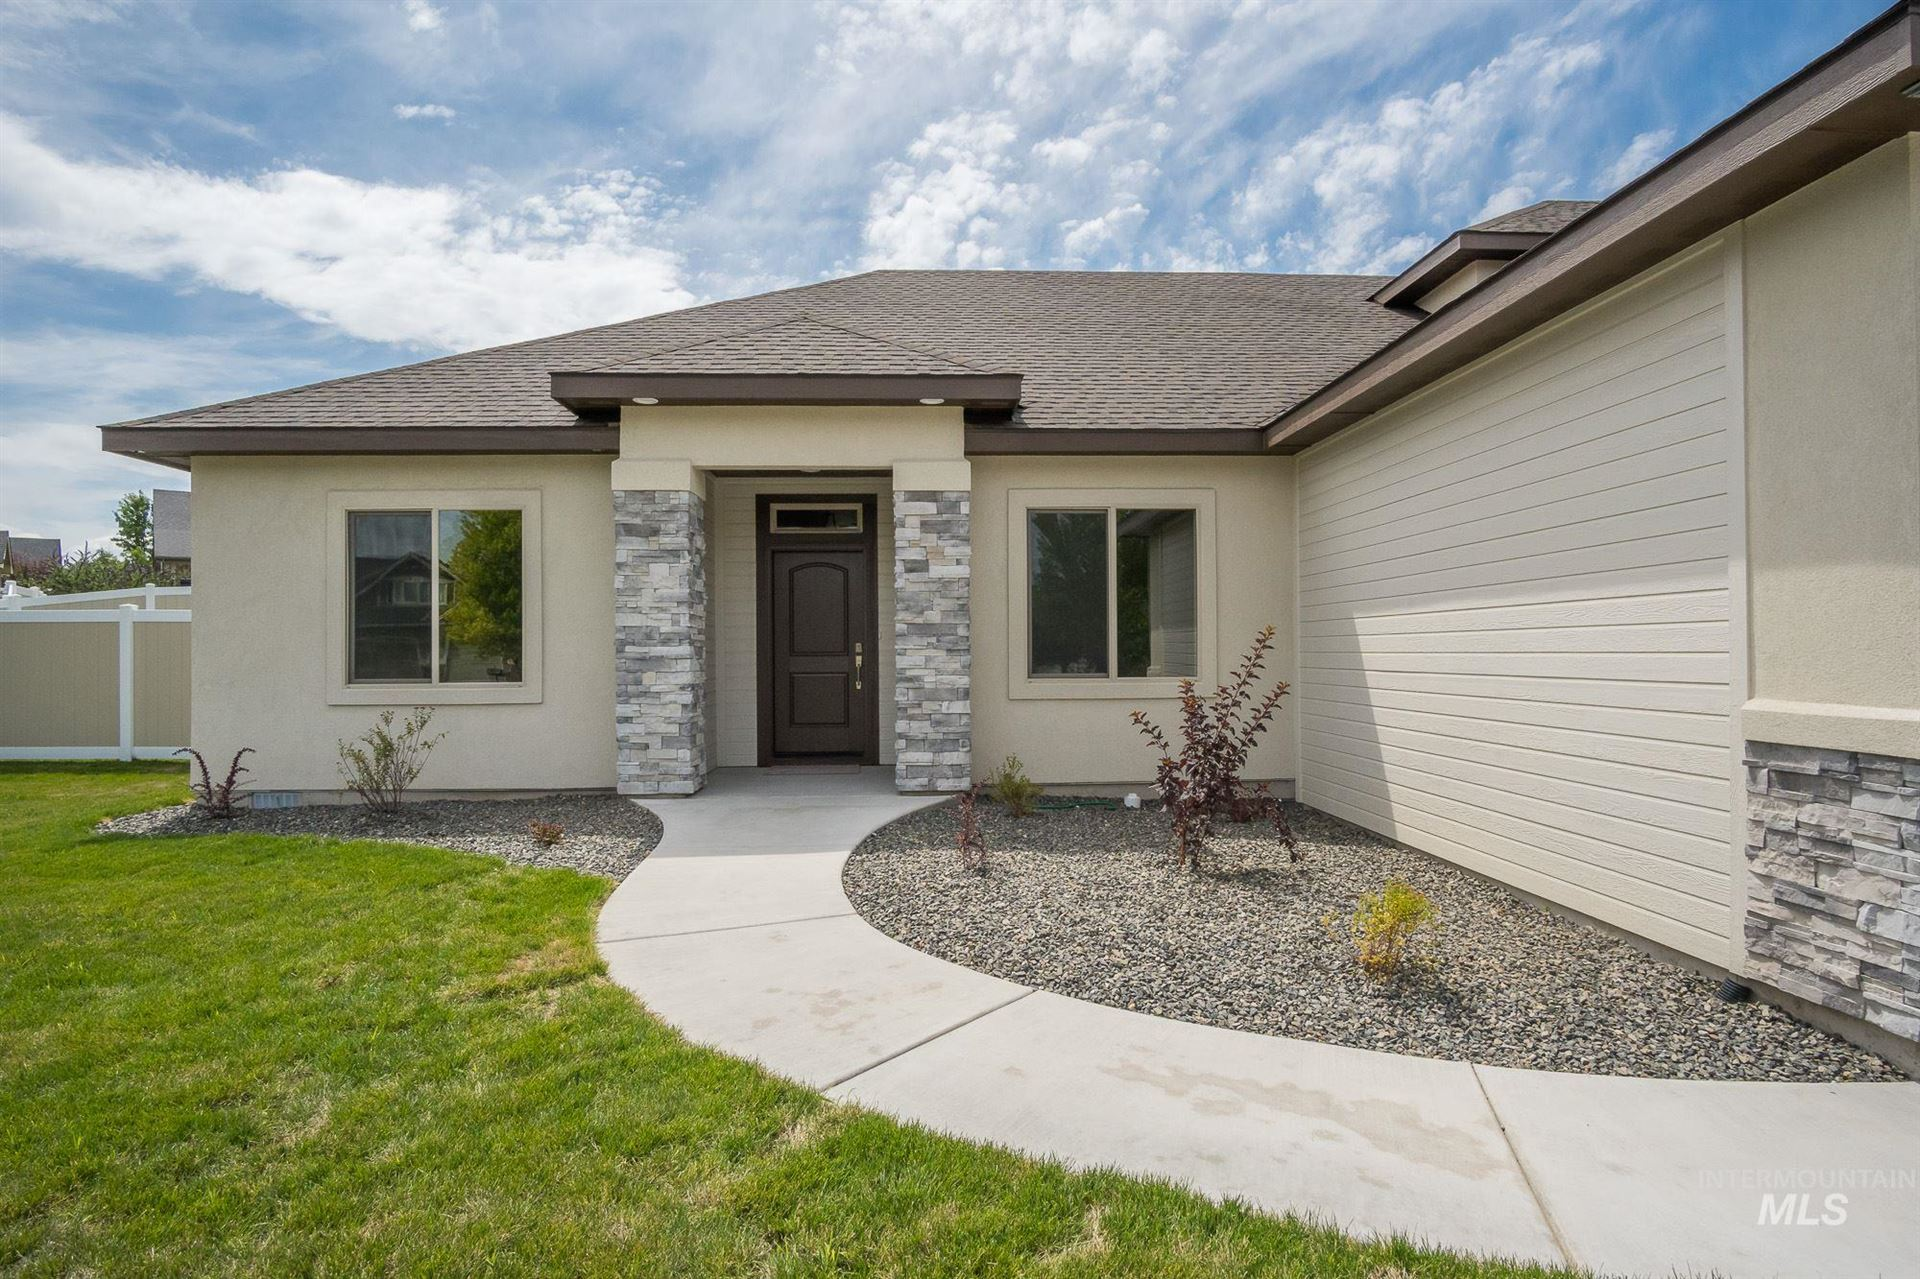 Photo of 3509 E Alexis Ct, Nampa, ID 83686 (MLS # 98794885)